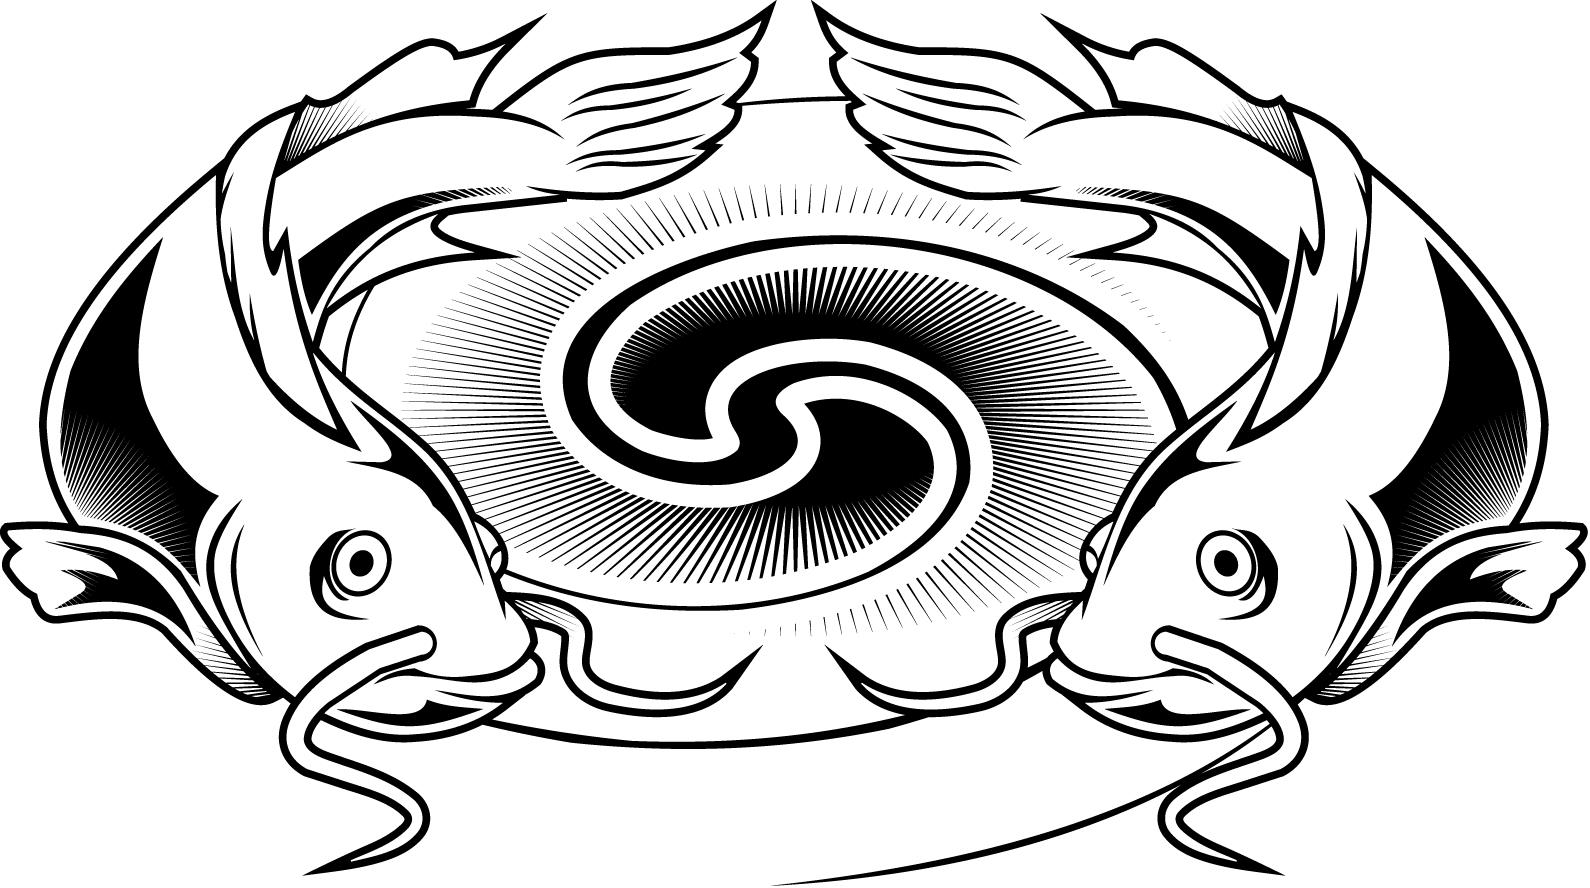 colouring-pages-of-a-catfish- ...